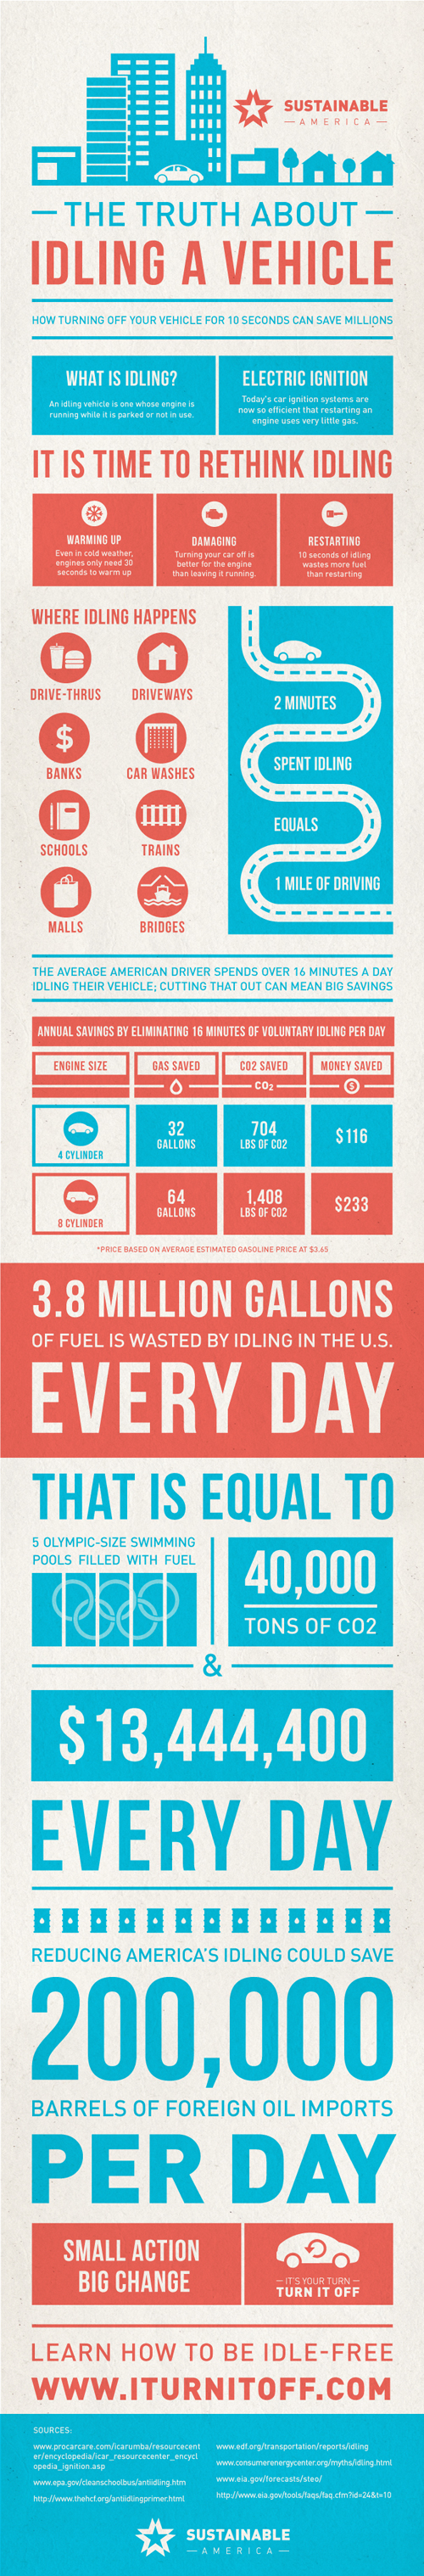 idling vehicle facts